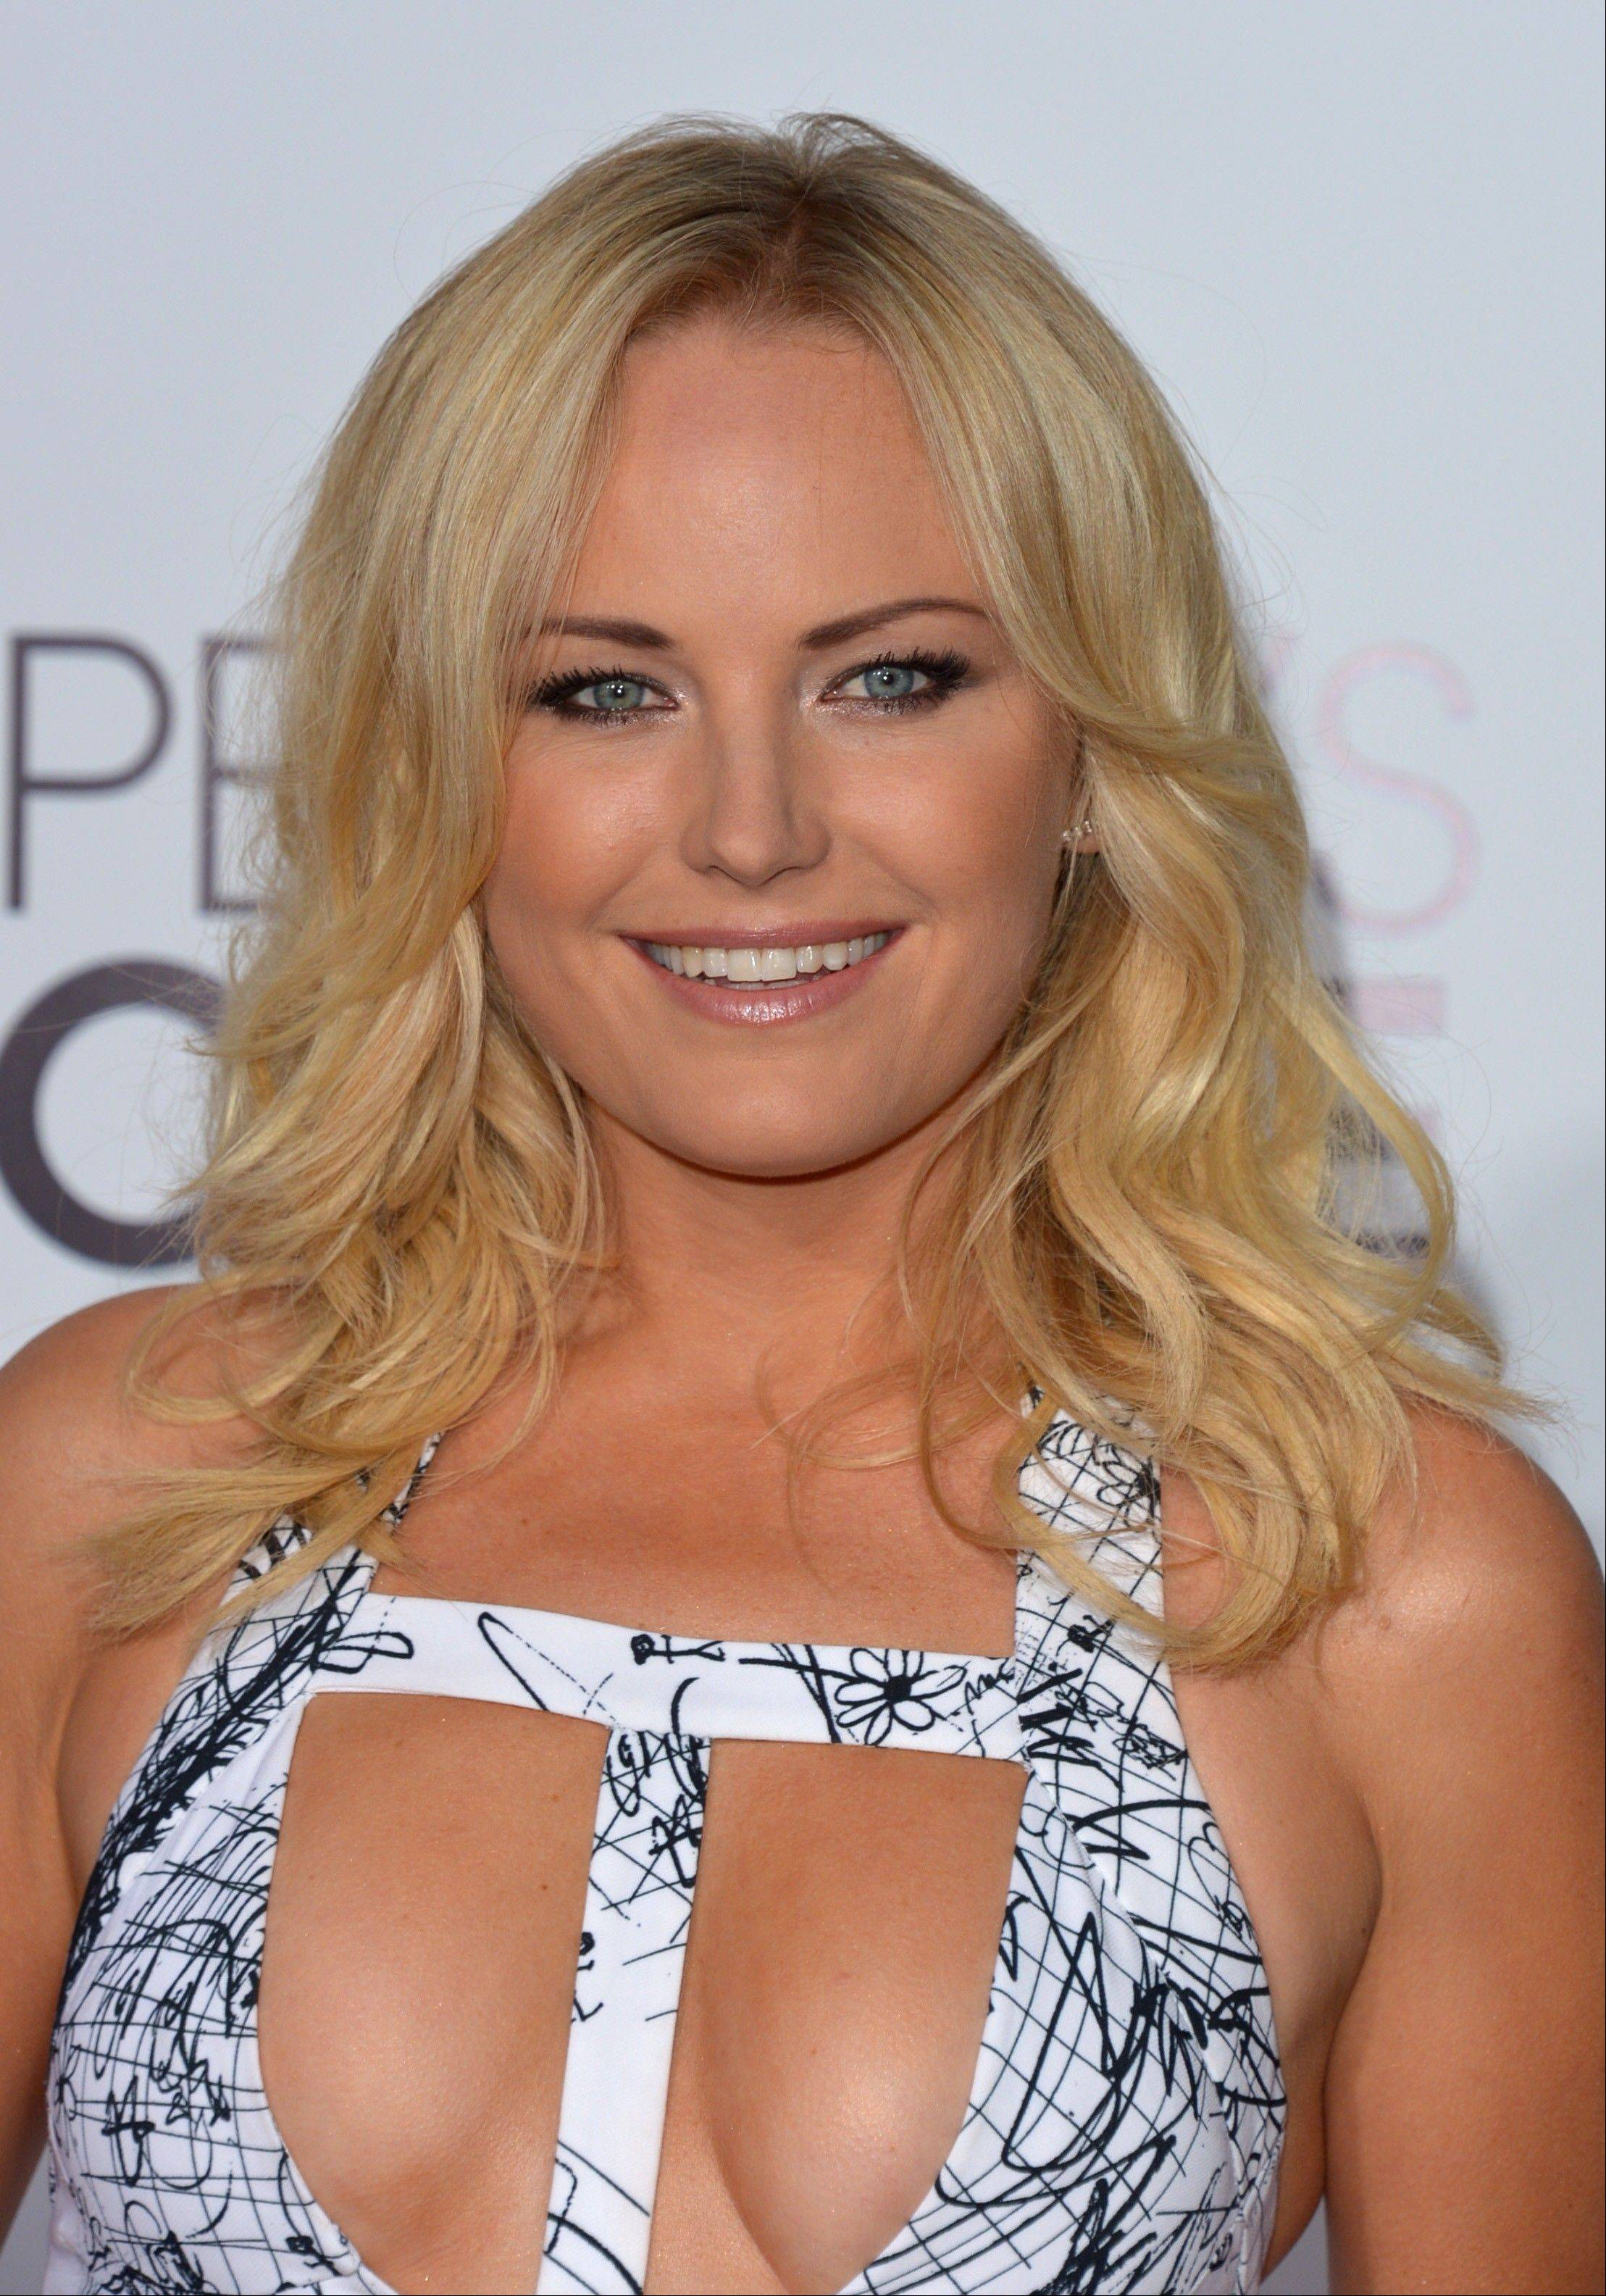 Associated PressMalin Akerman arrives at the 40th annual People's Choice Awards Wednesday in Los Angeles.